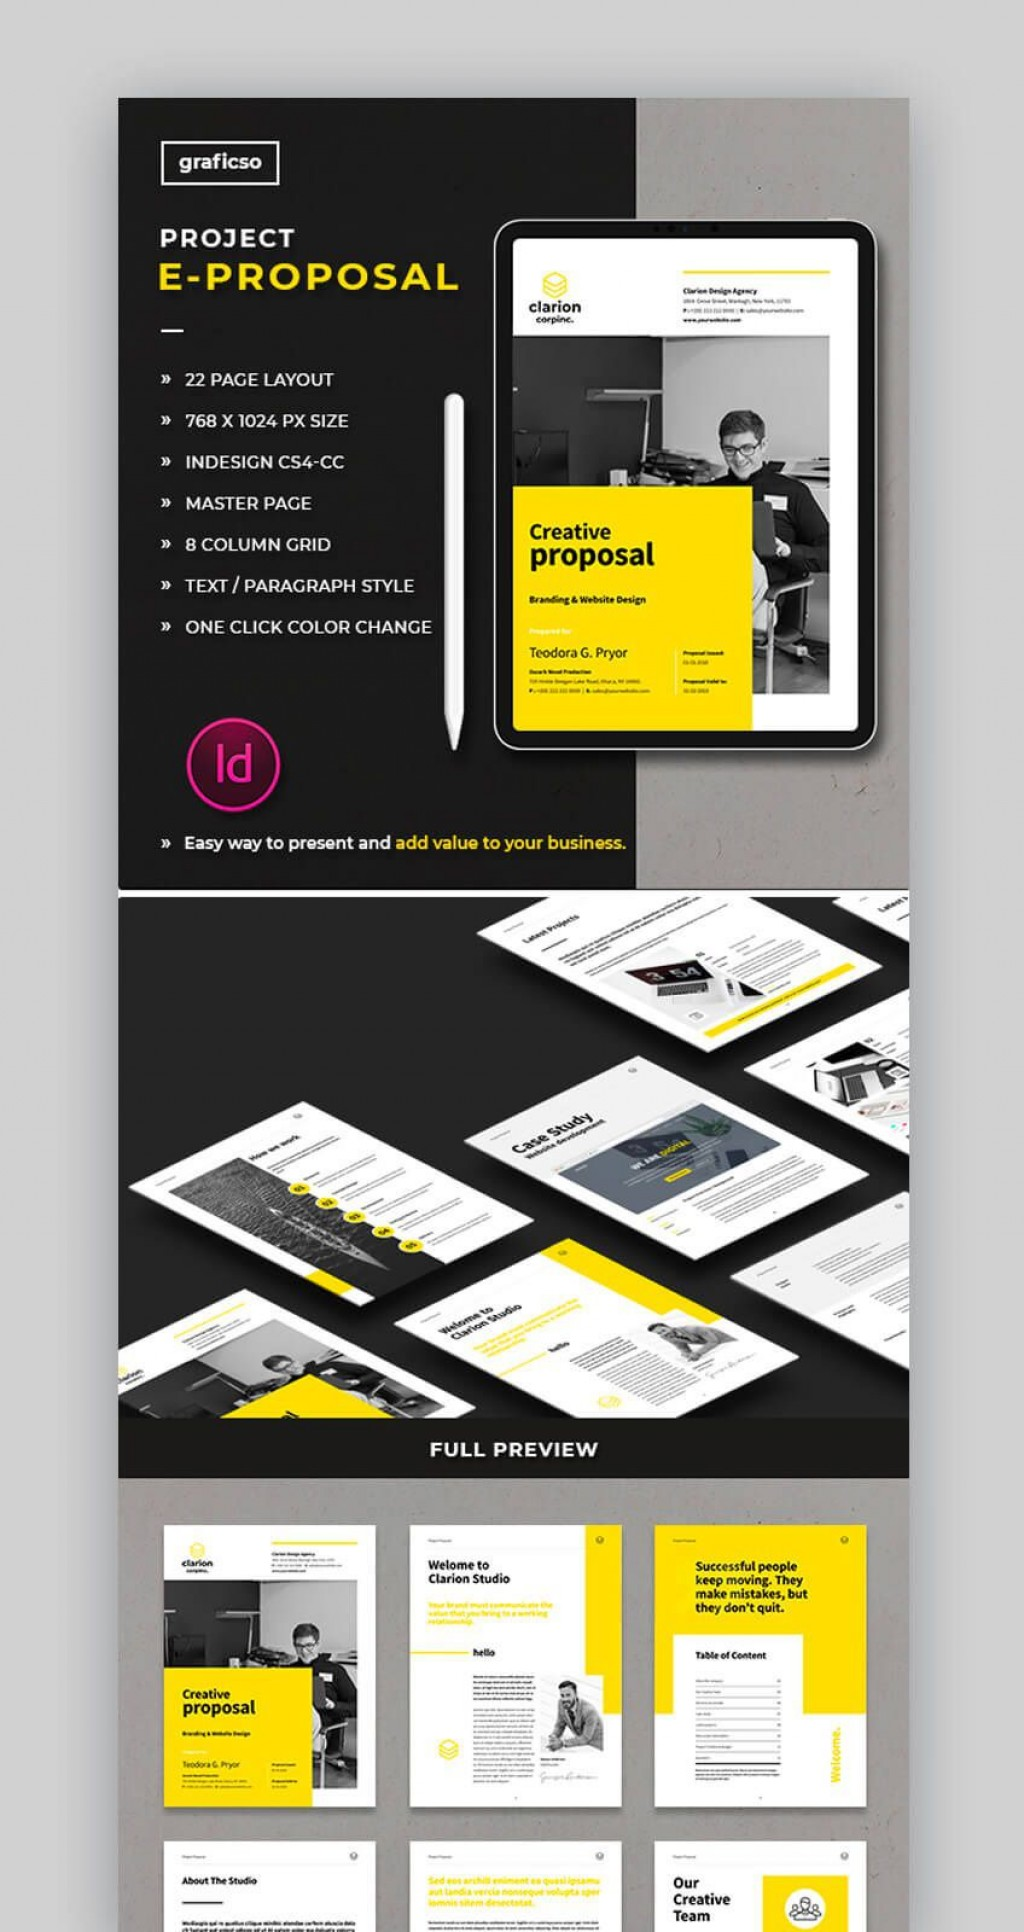 005 Marvelou Graphic Design Proposal Template Word High Def Large